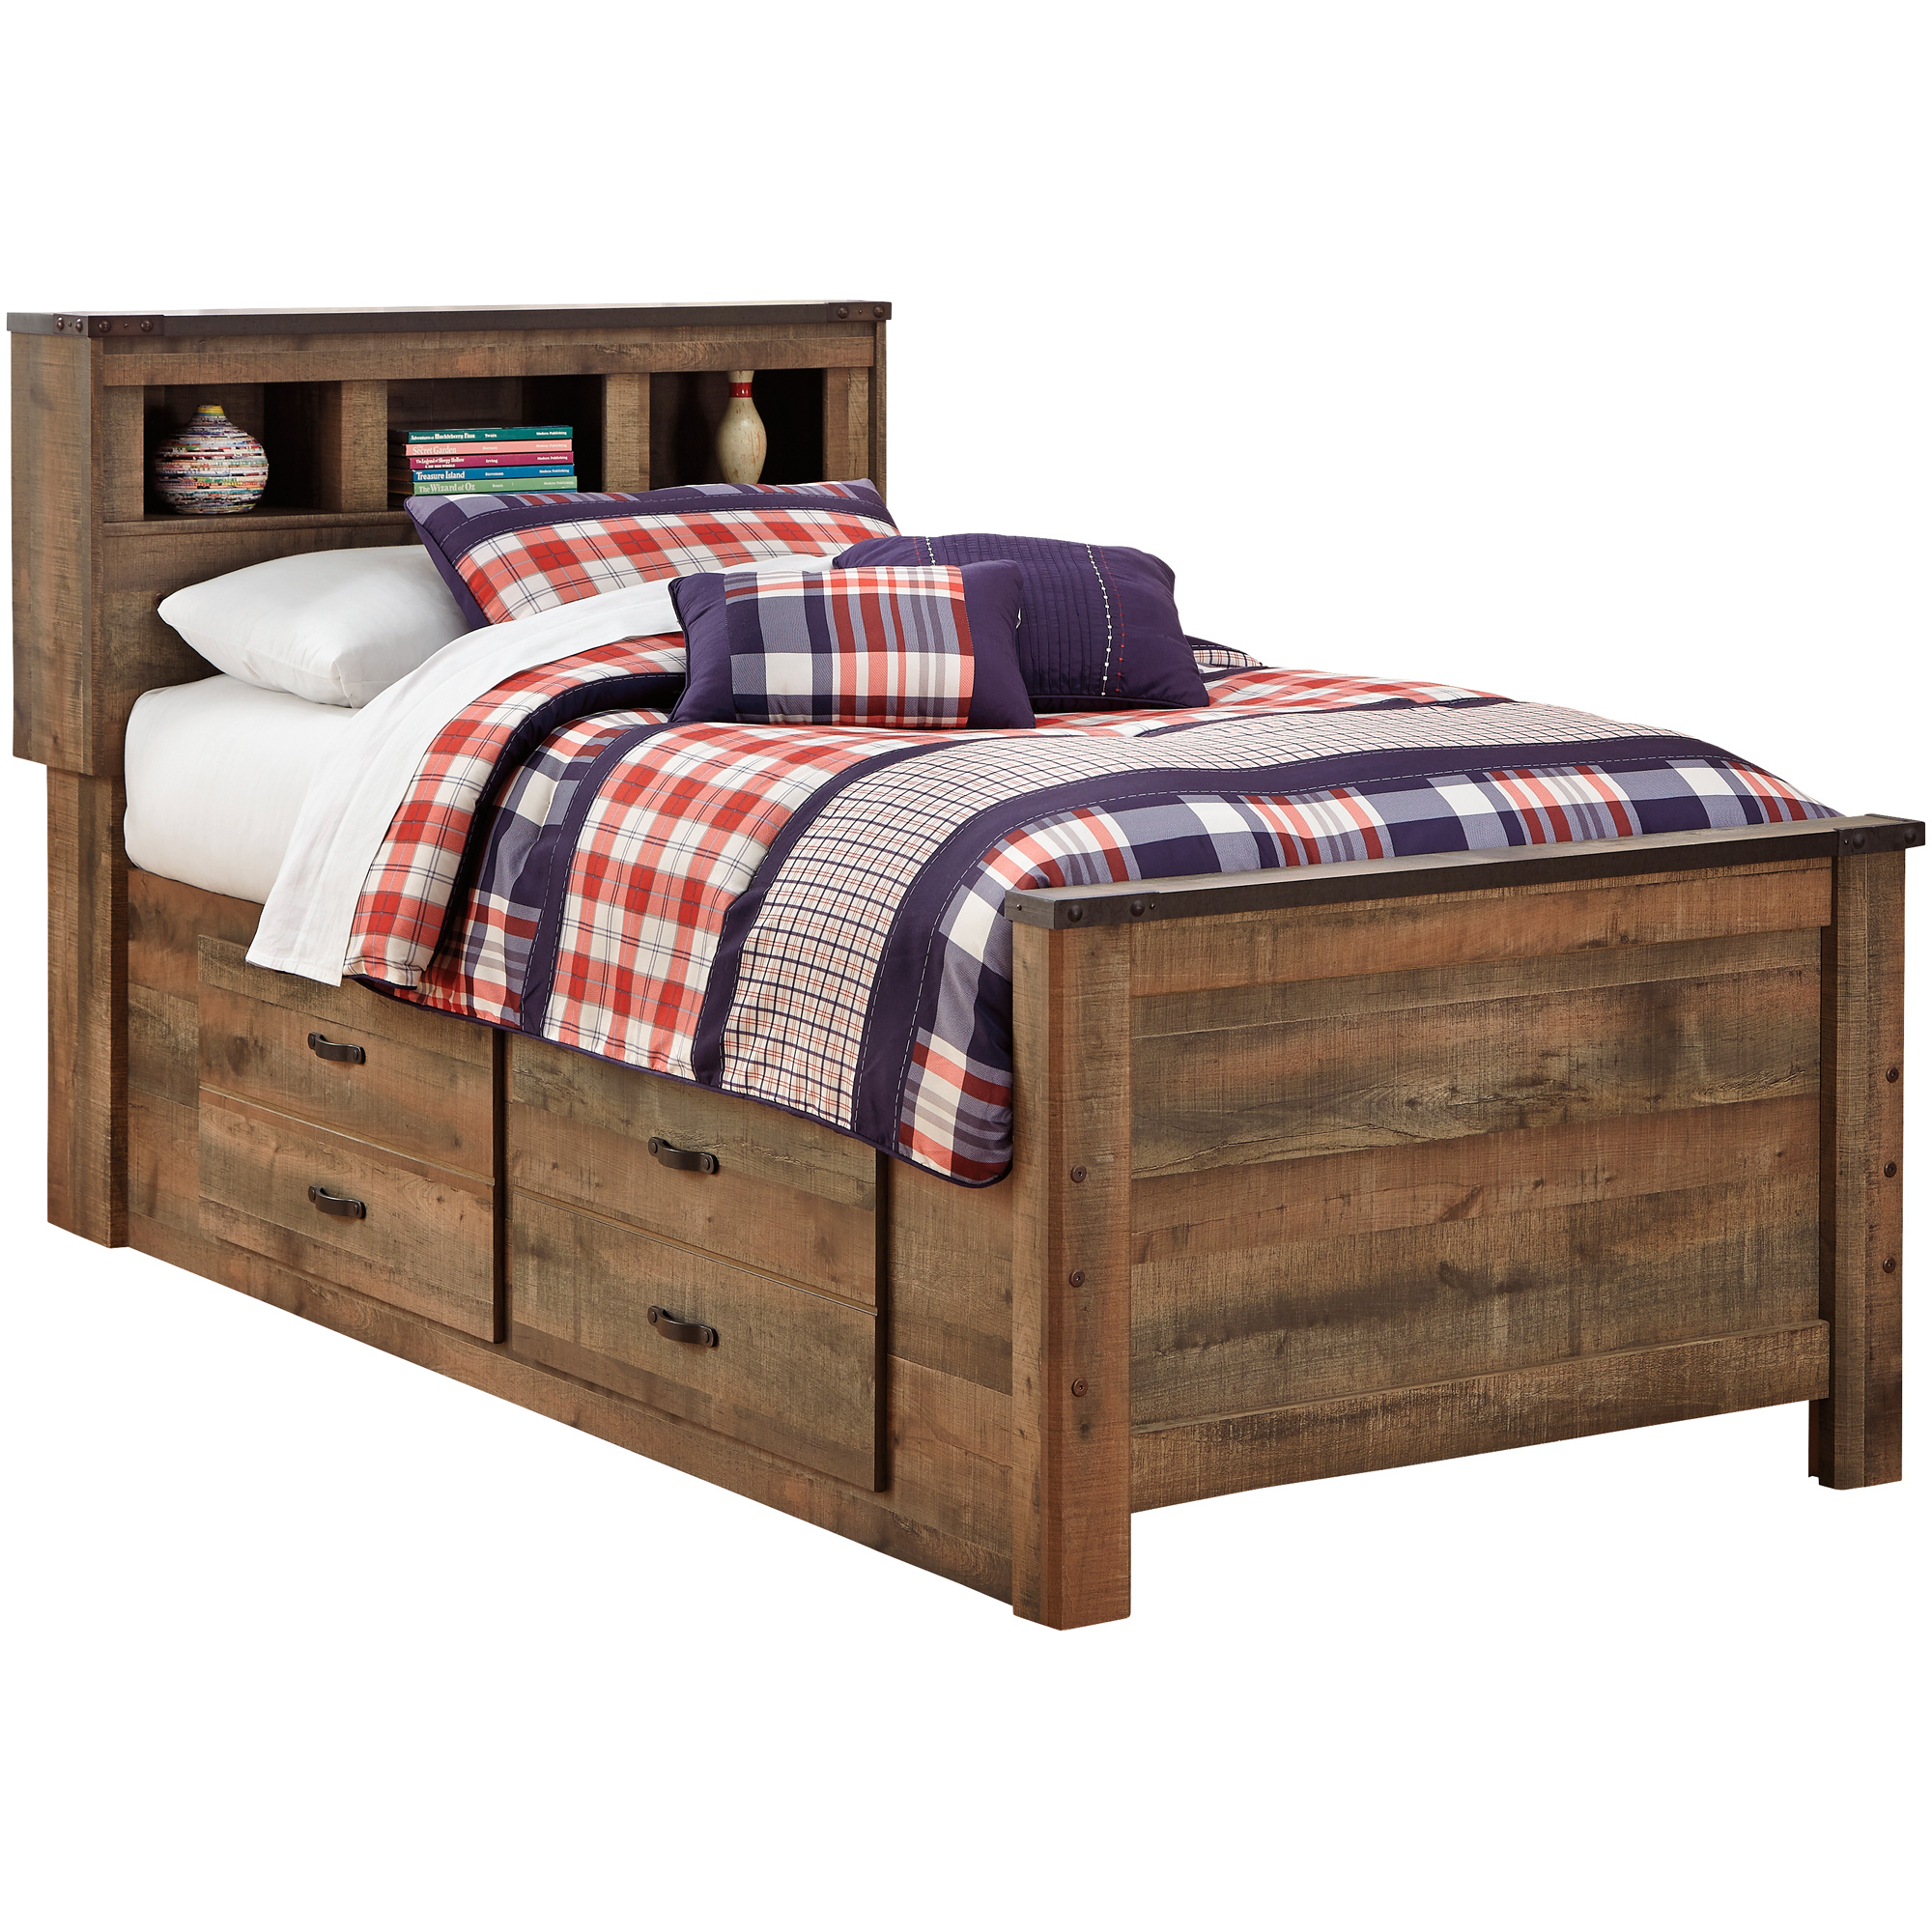 Trinell Captains Bed Slumberland